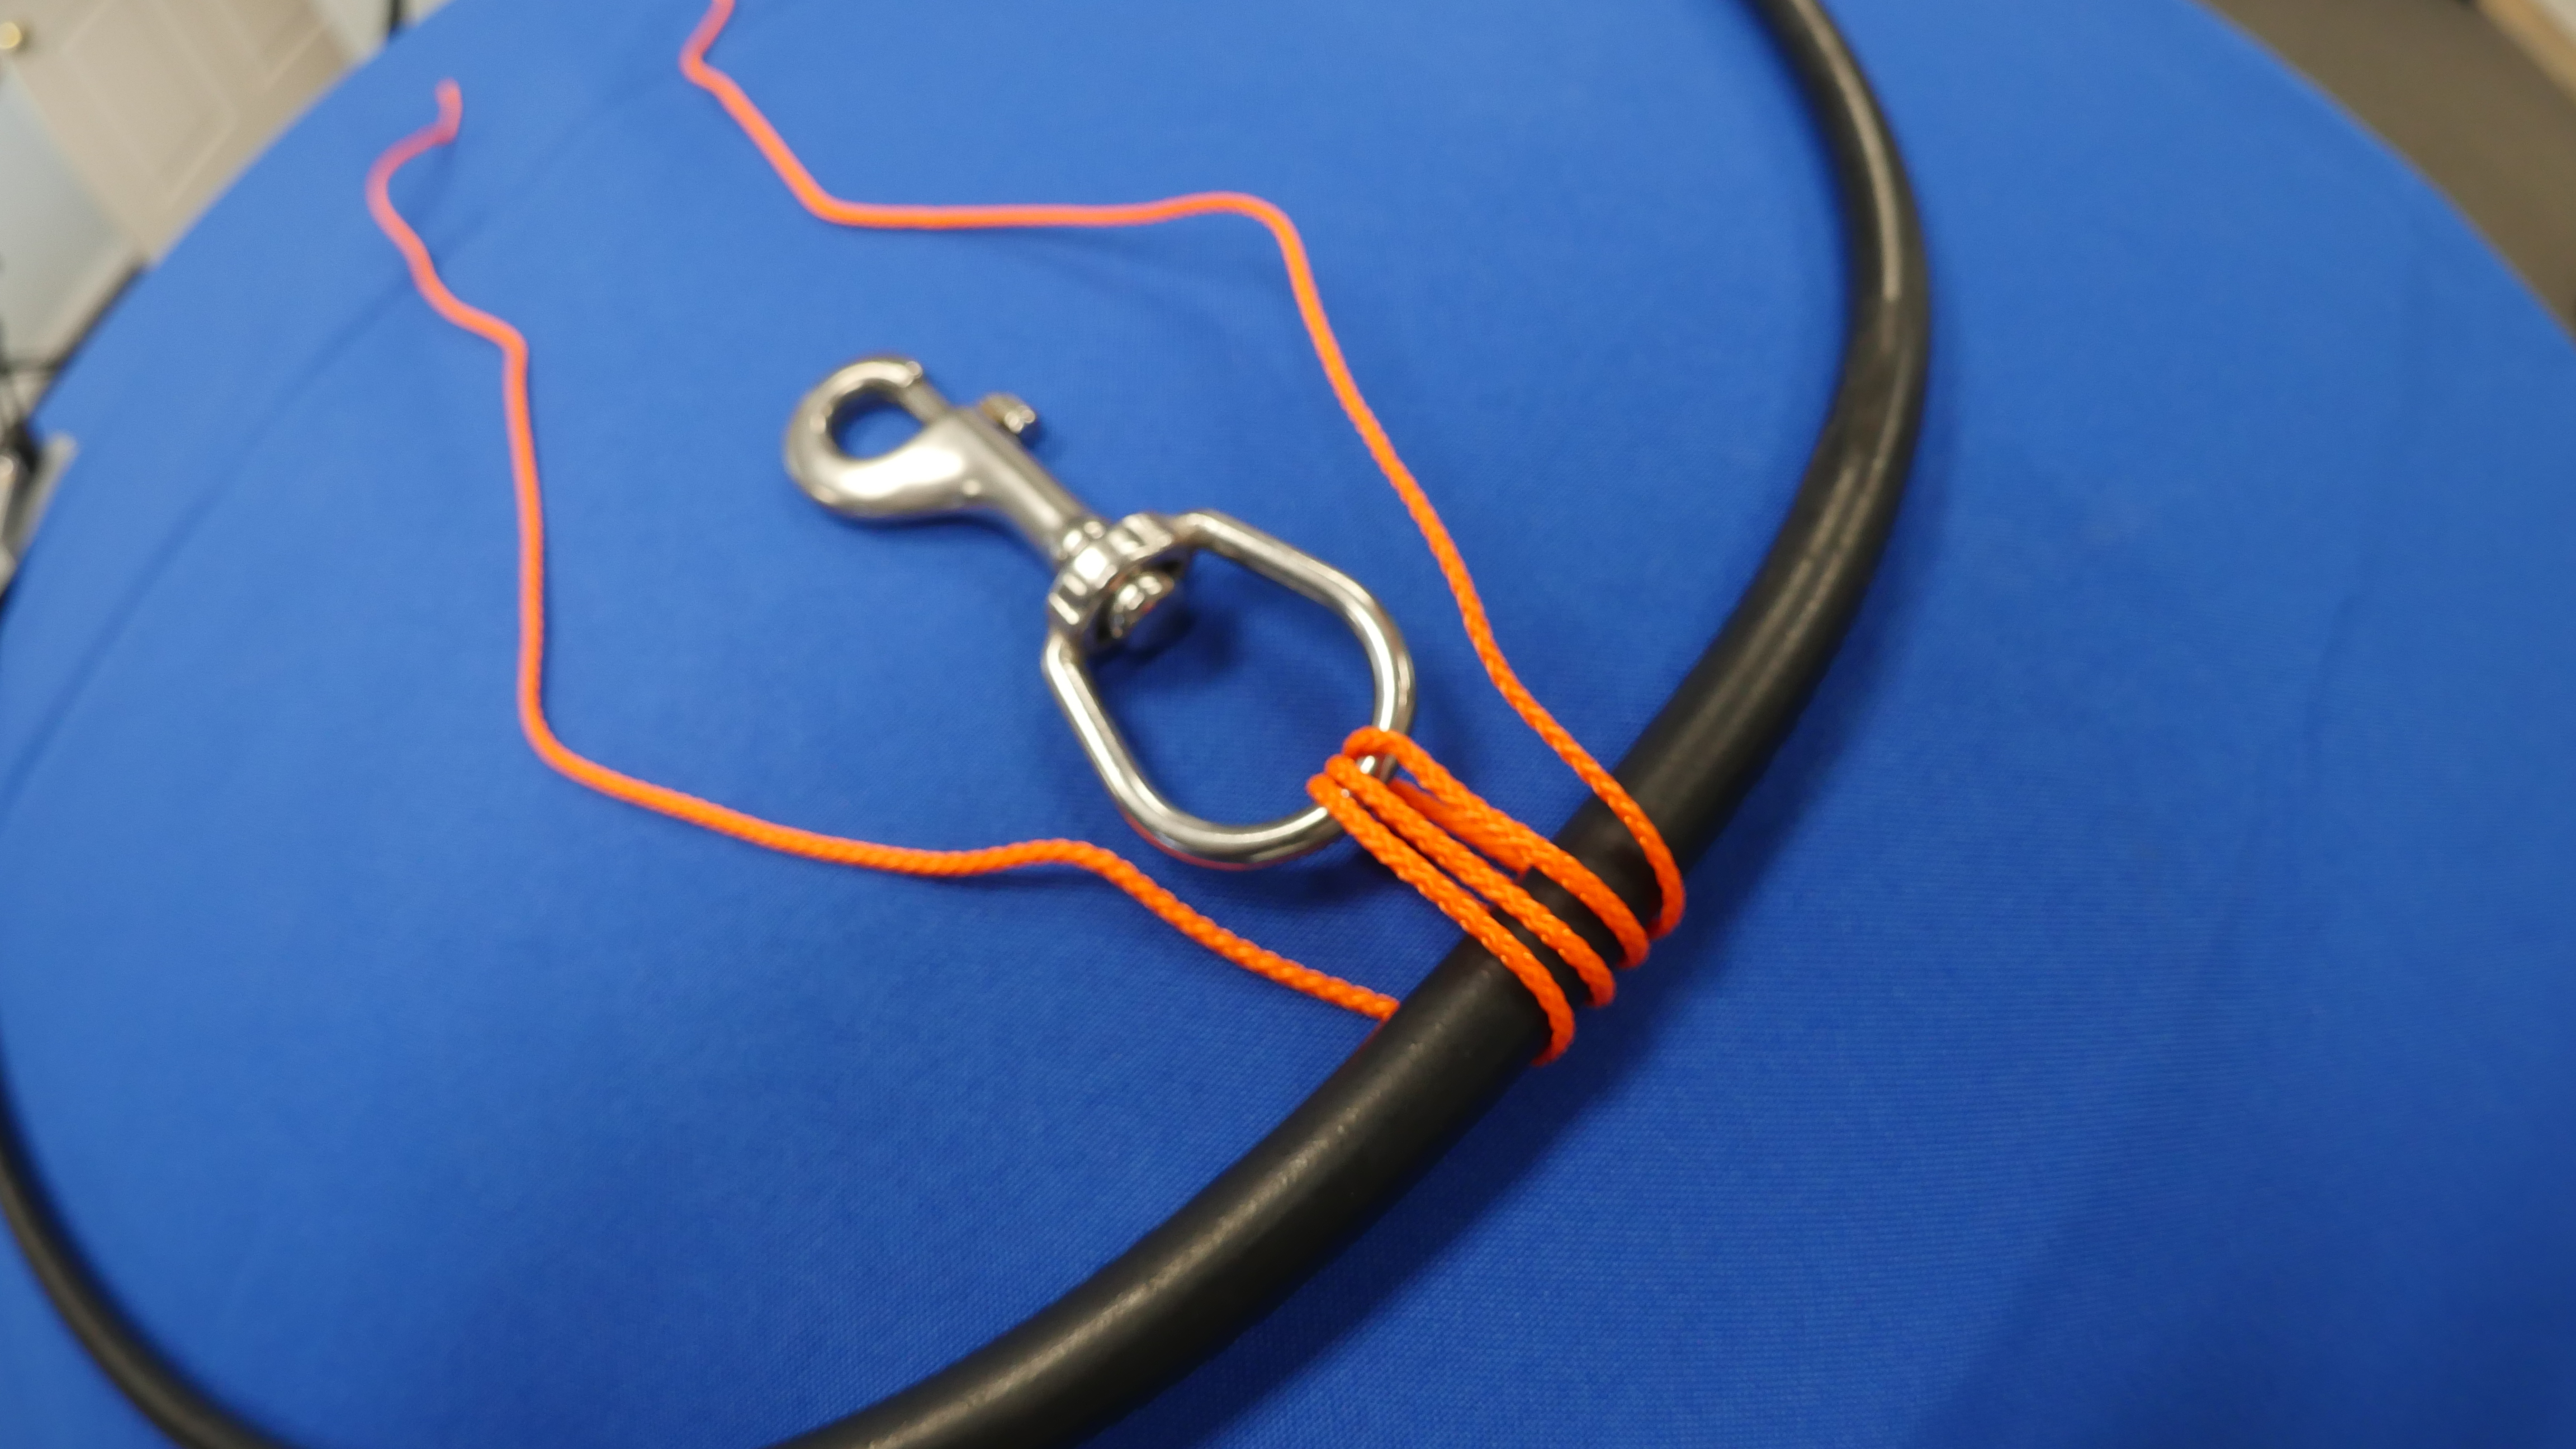 How to Attach a Bolt Snap to Dive Equipment - SDI | TDI